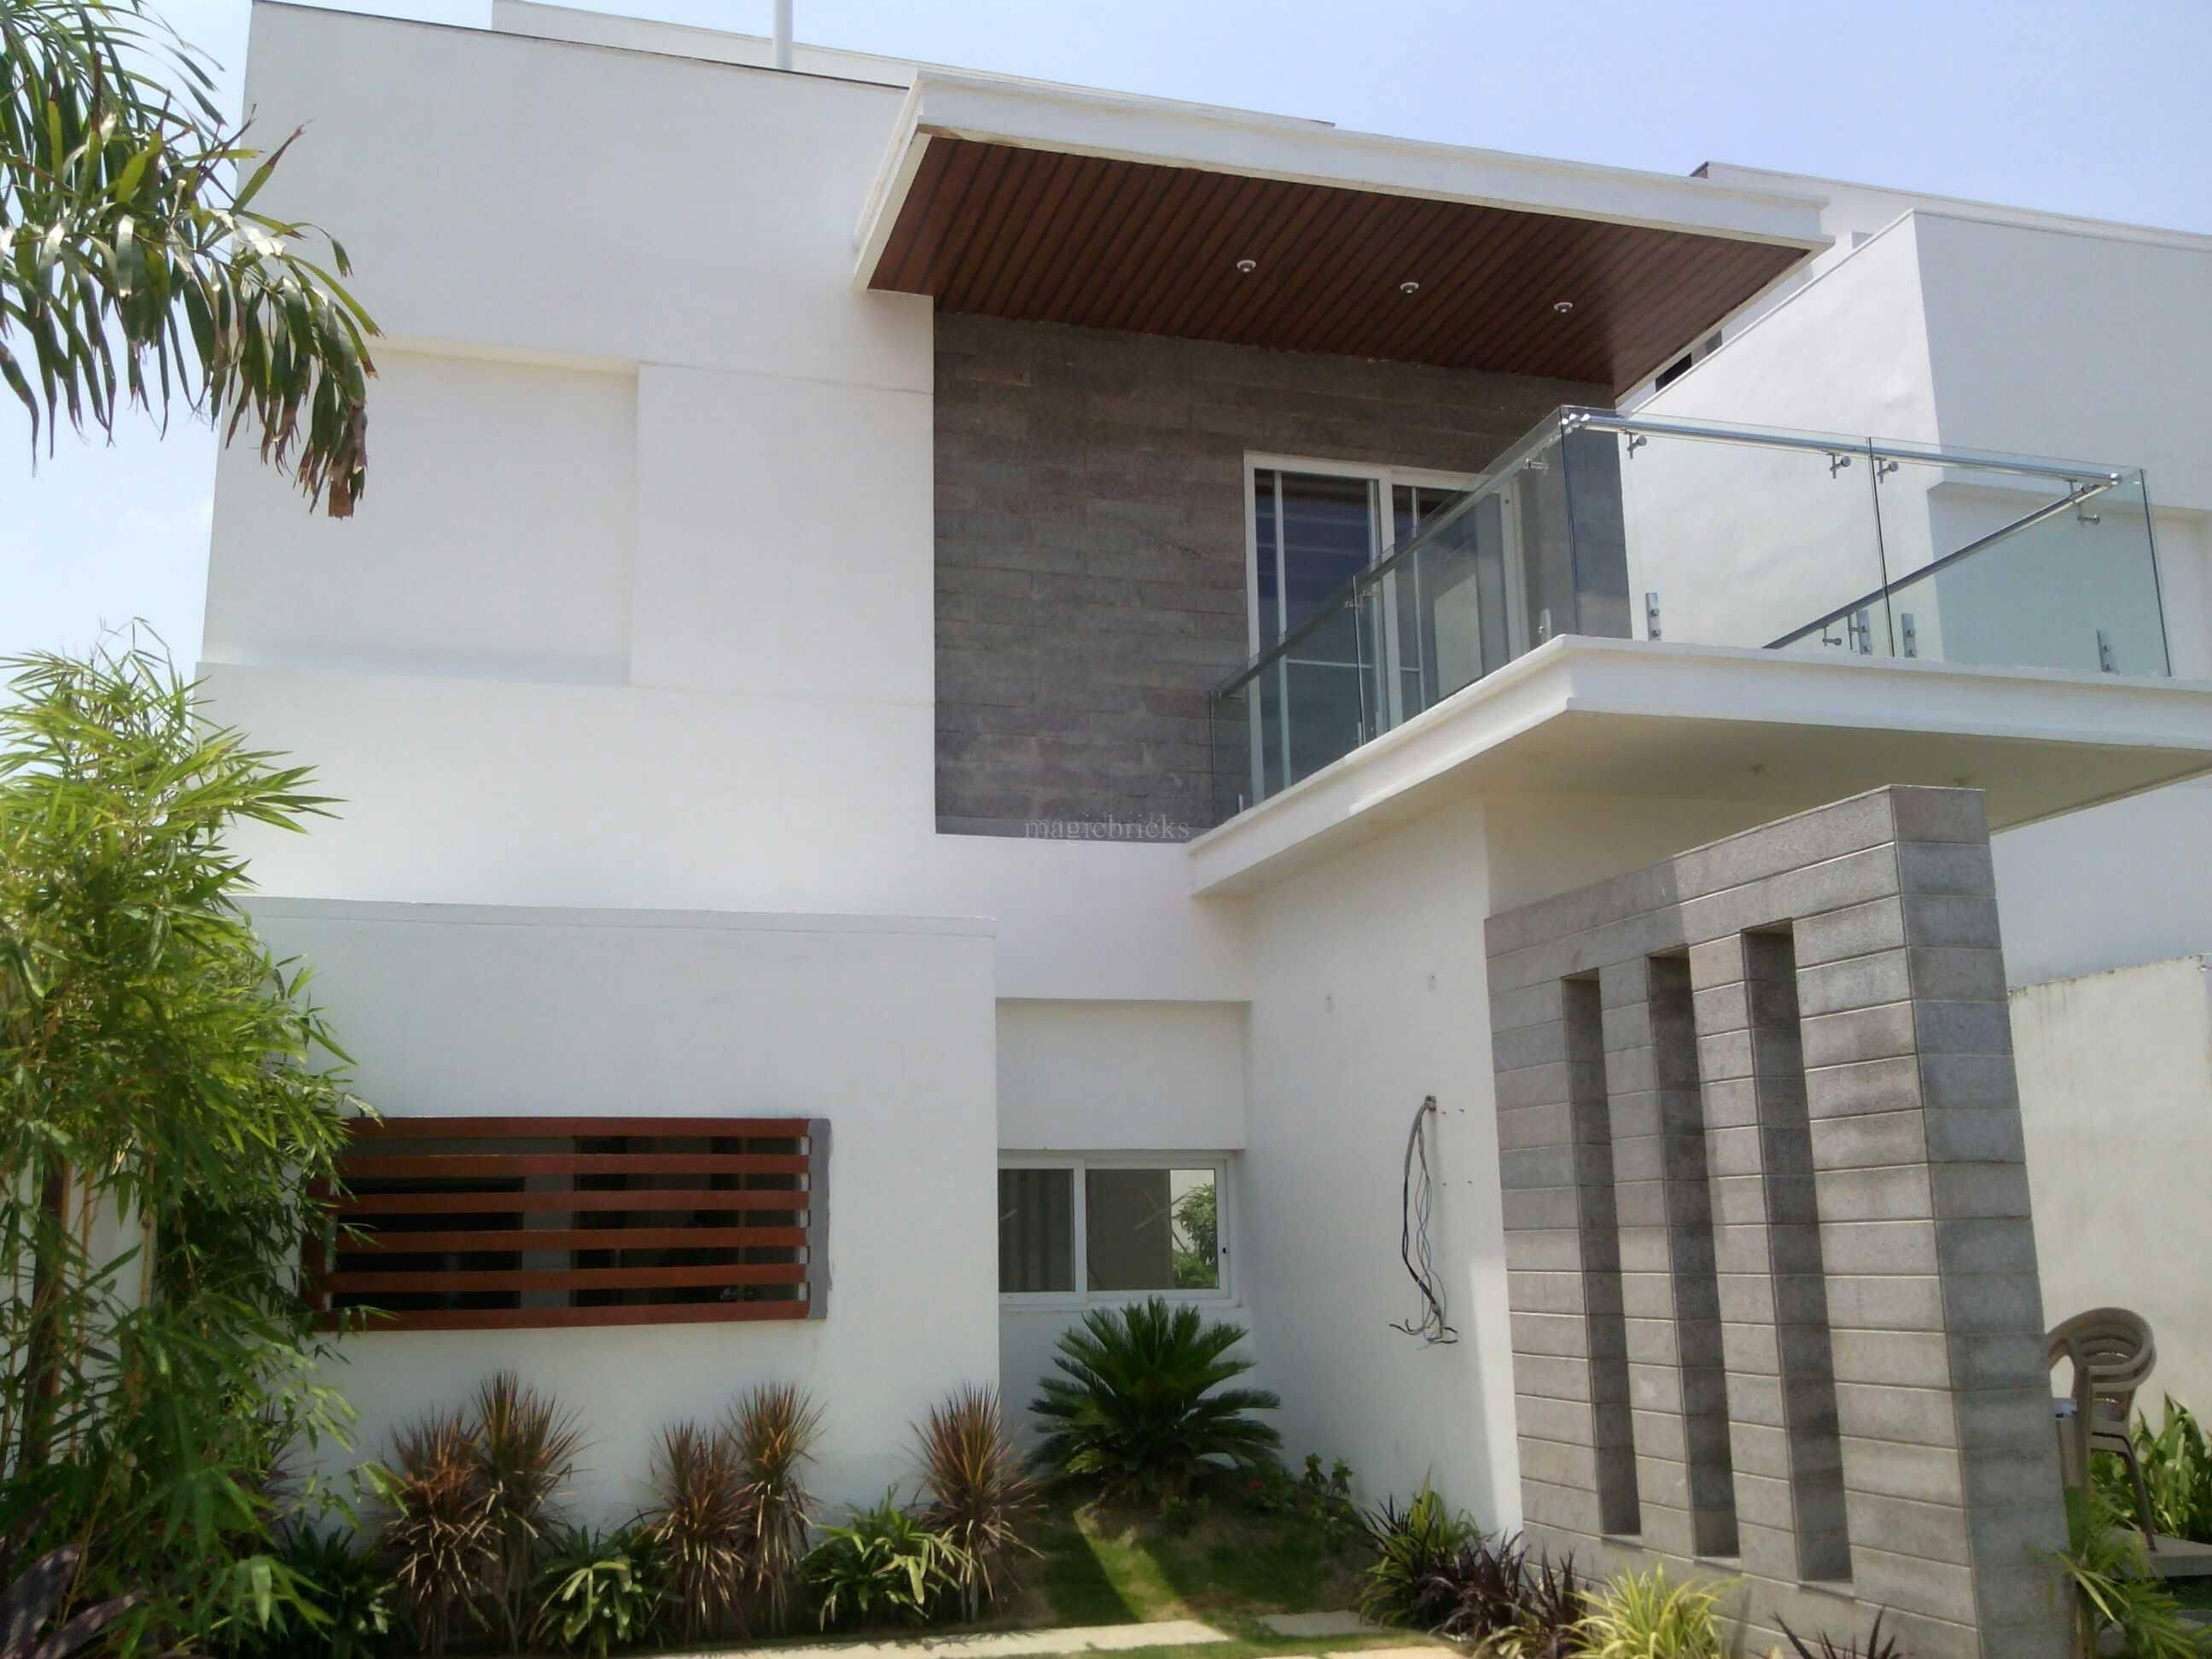 Own A 4bhk Villa For Just Rs 50 Lakh